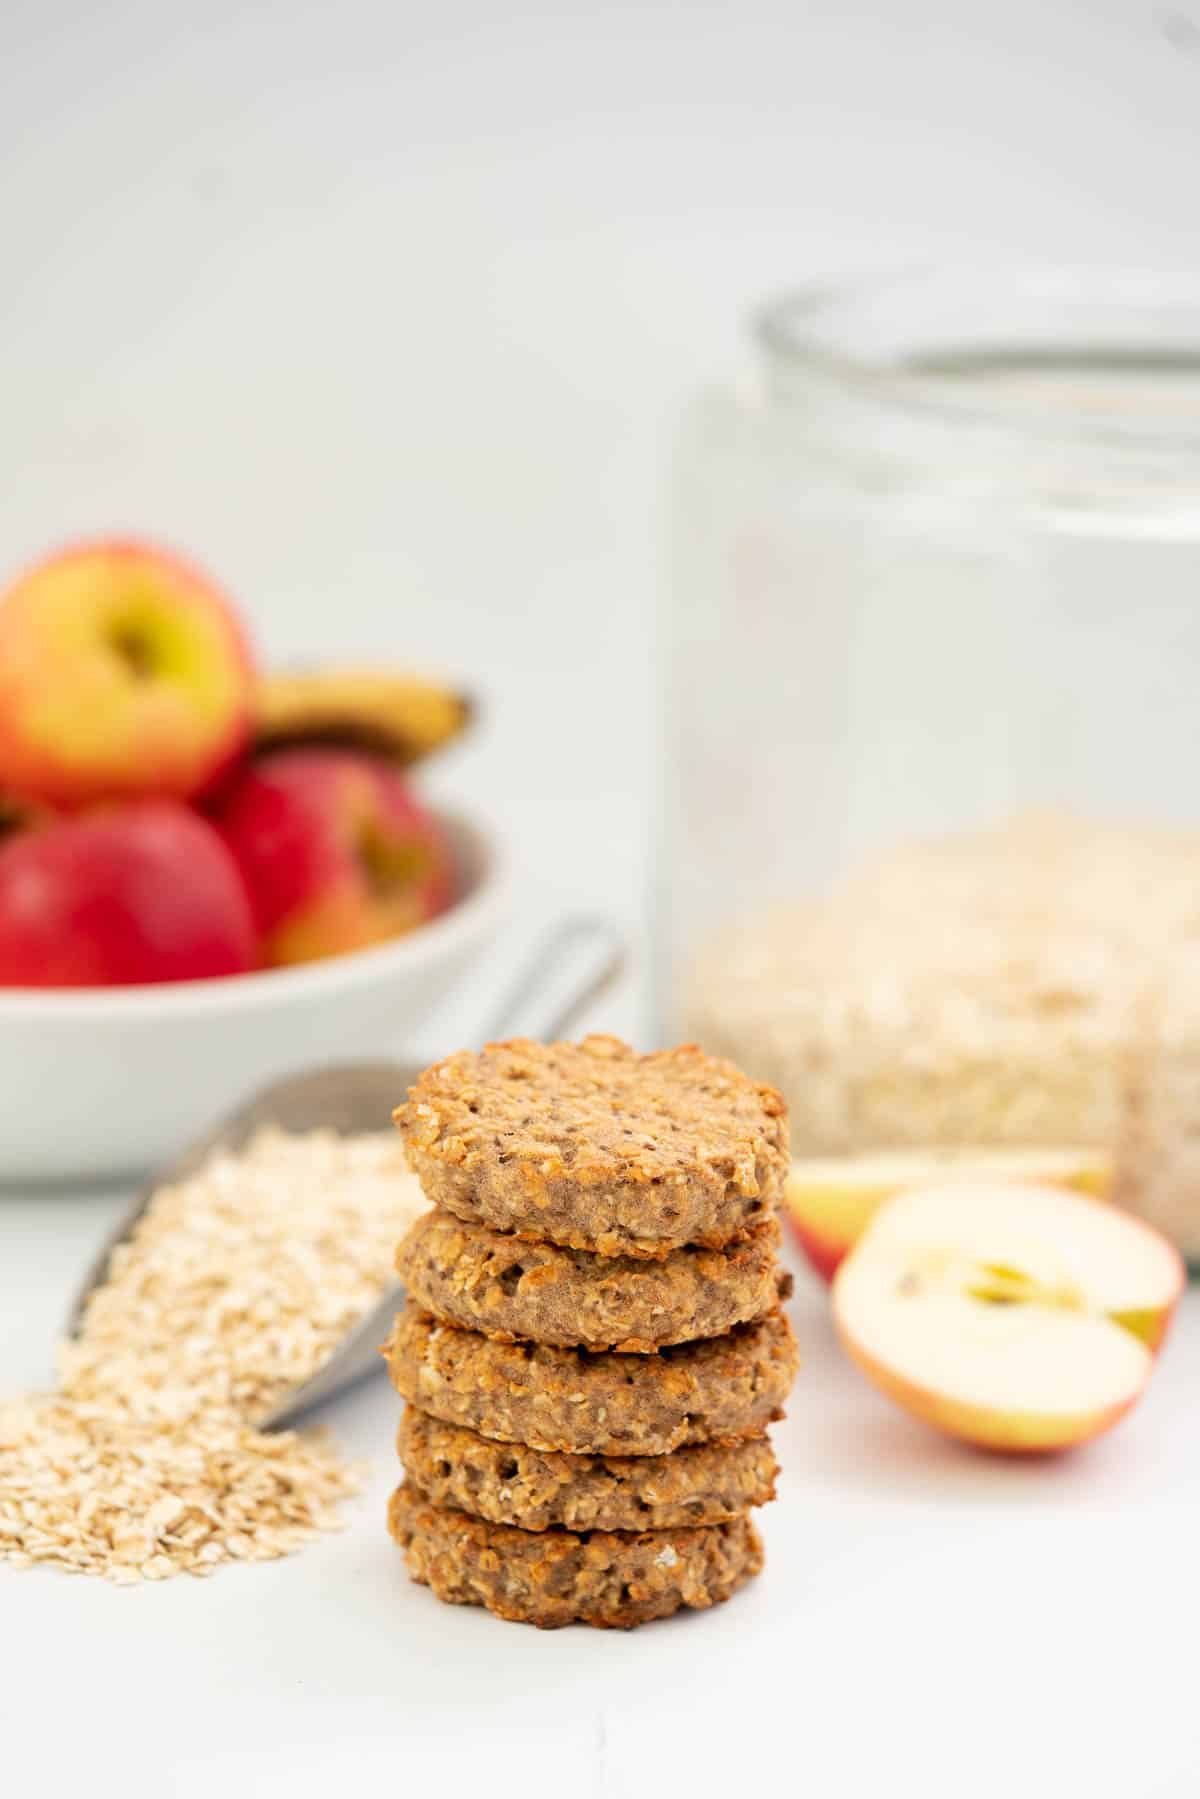 A stack of 5 oatmeal toddler cookies on a bench top with rolled oats and apples in the background